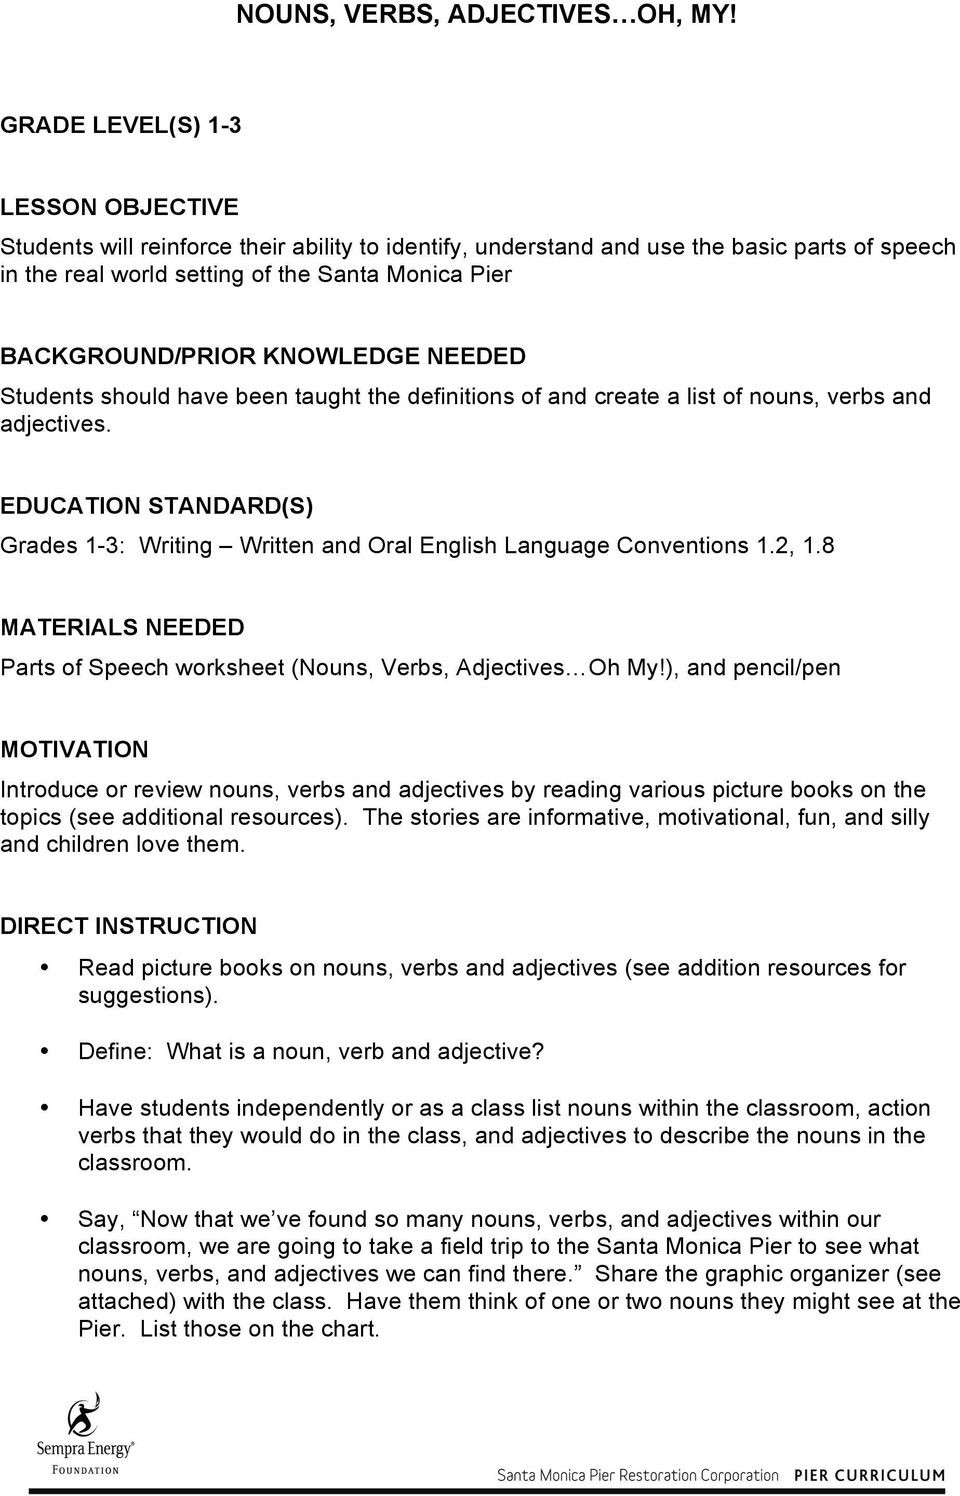 Nouns Verbs Adjectives Worksheet Nouns Verbs Adjectives Oh My Pdf Free Download